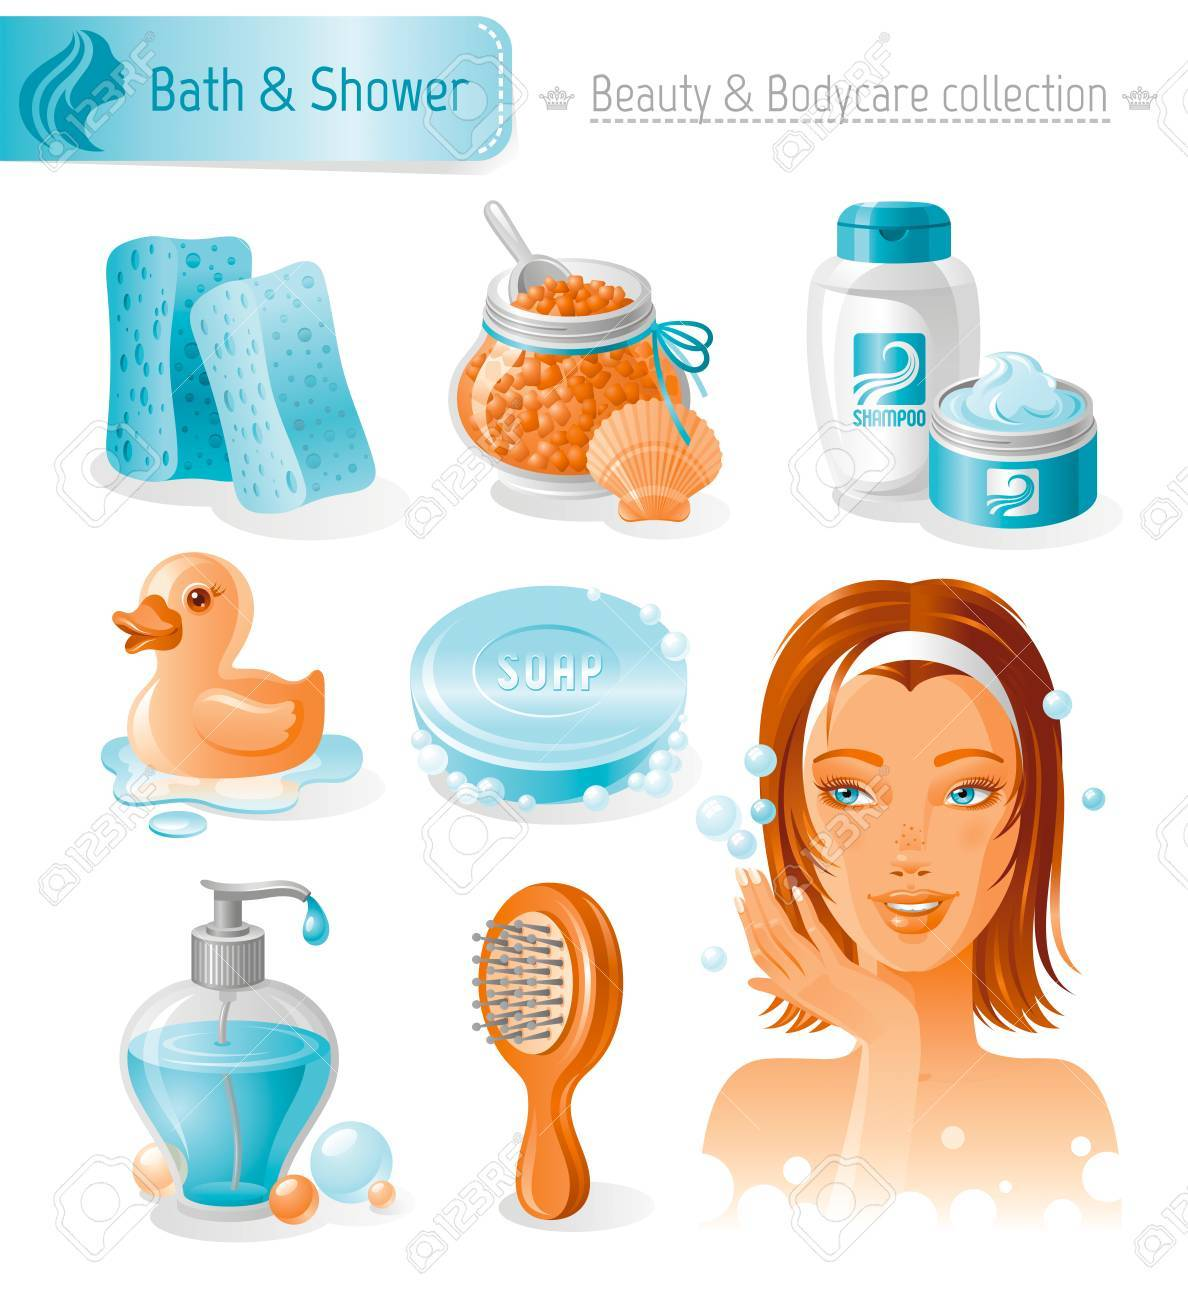 Beauty and cosmetics icon set with beautiful young adult woman, holding hand near face on white background. Bath and shower healthy lifestyle symbols for peoples hair, skin and body care. - 59806440